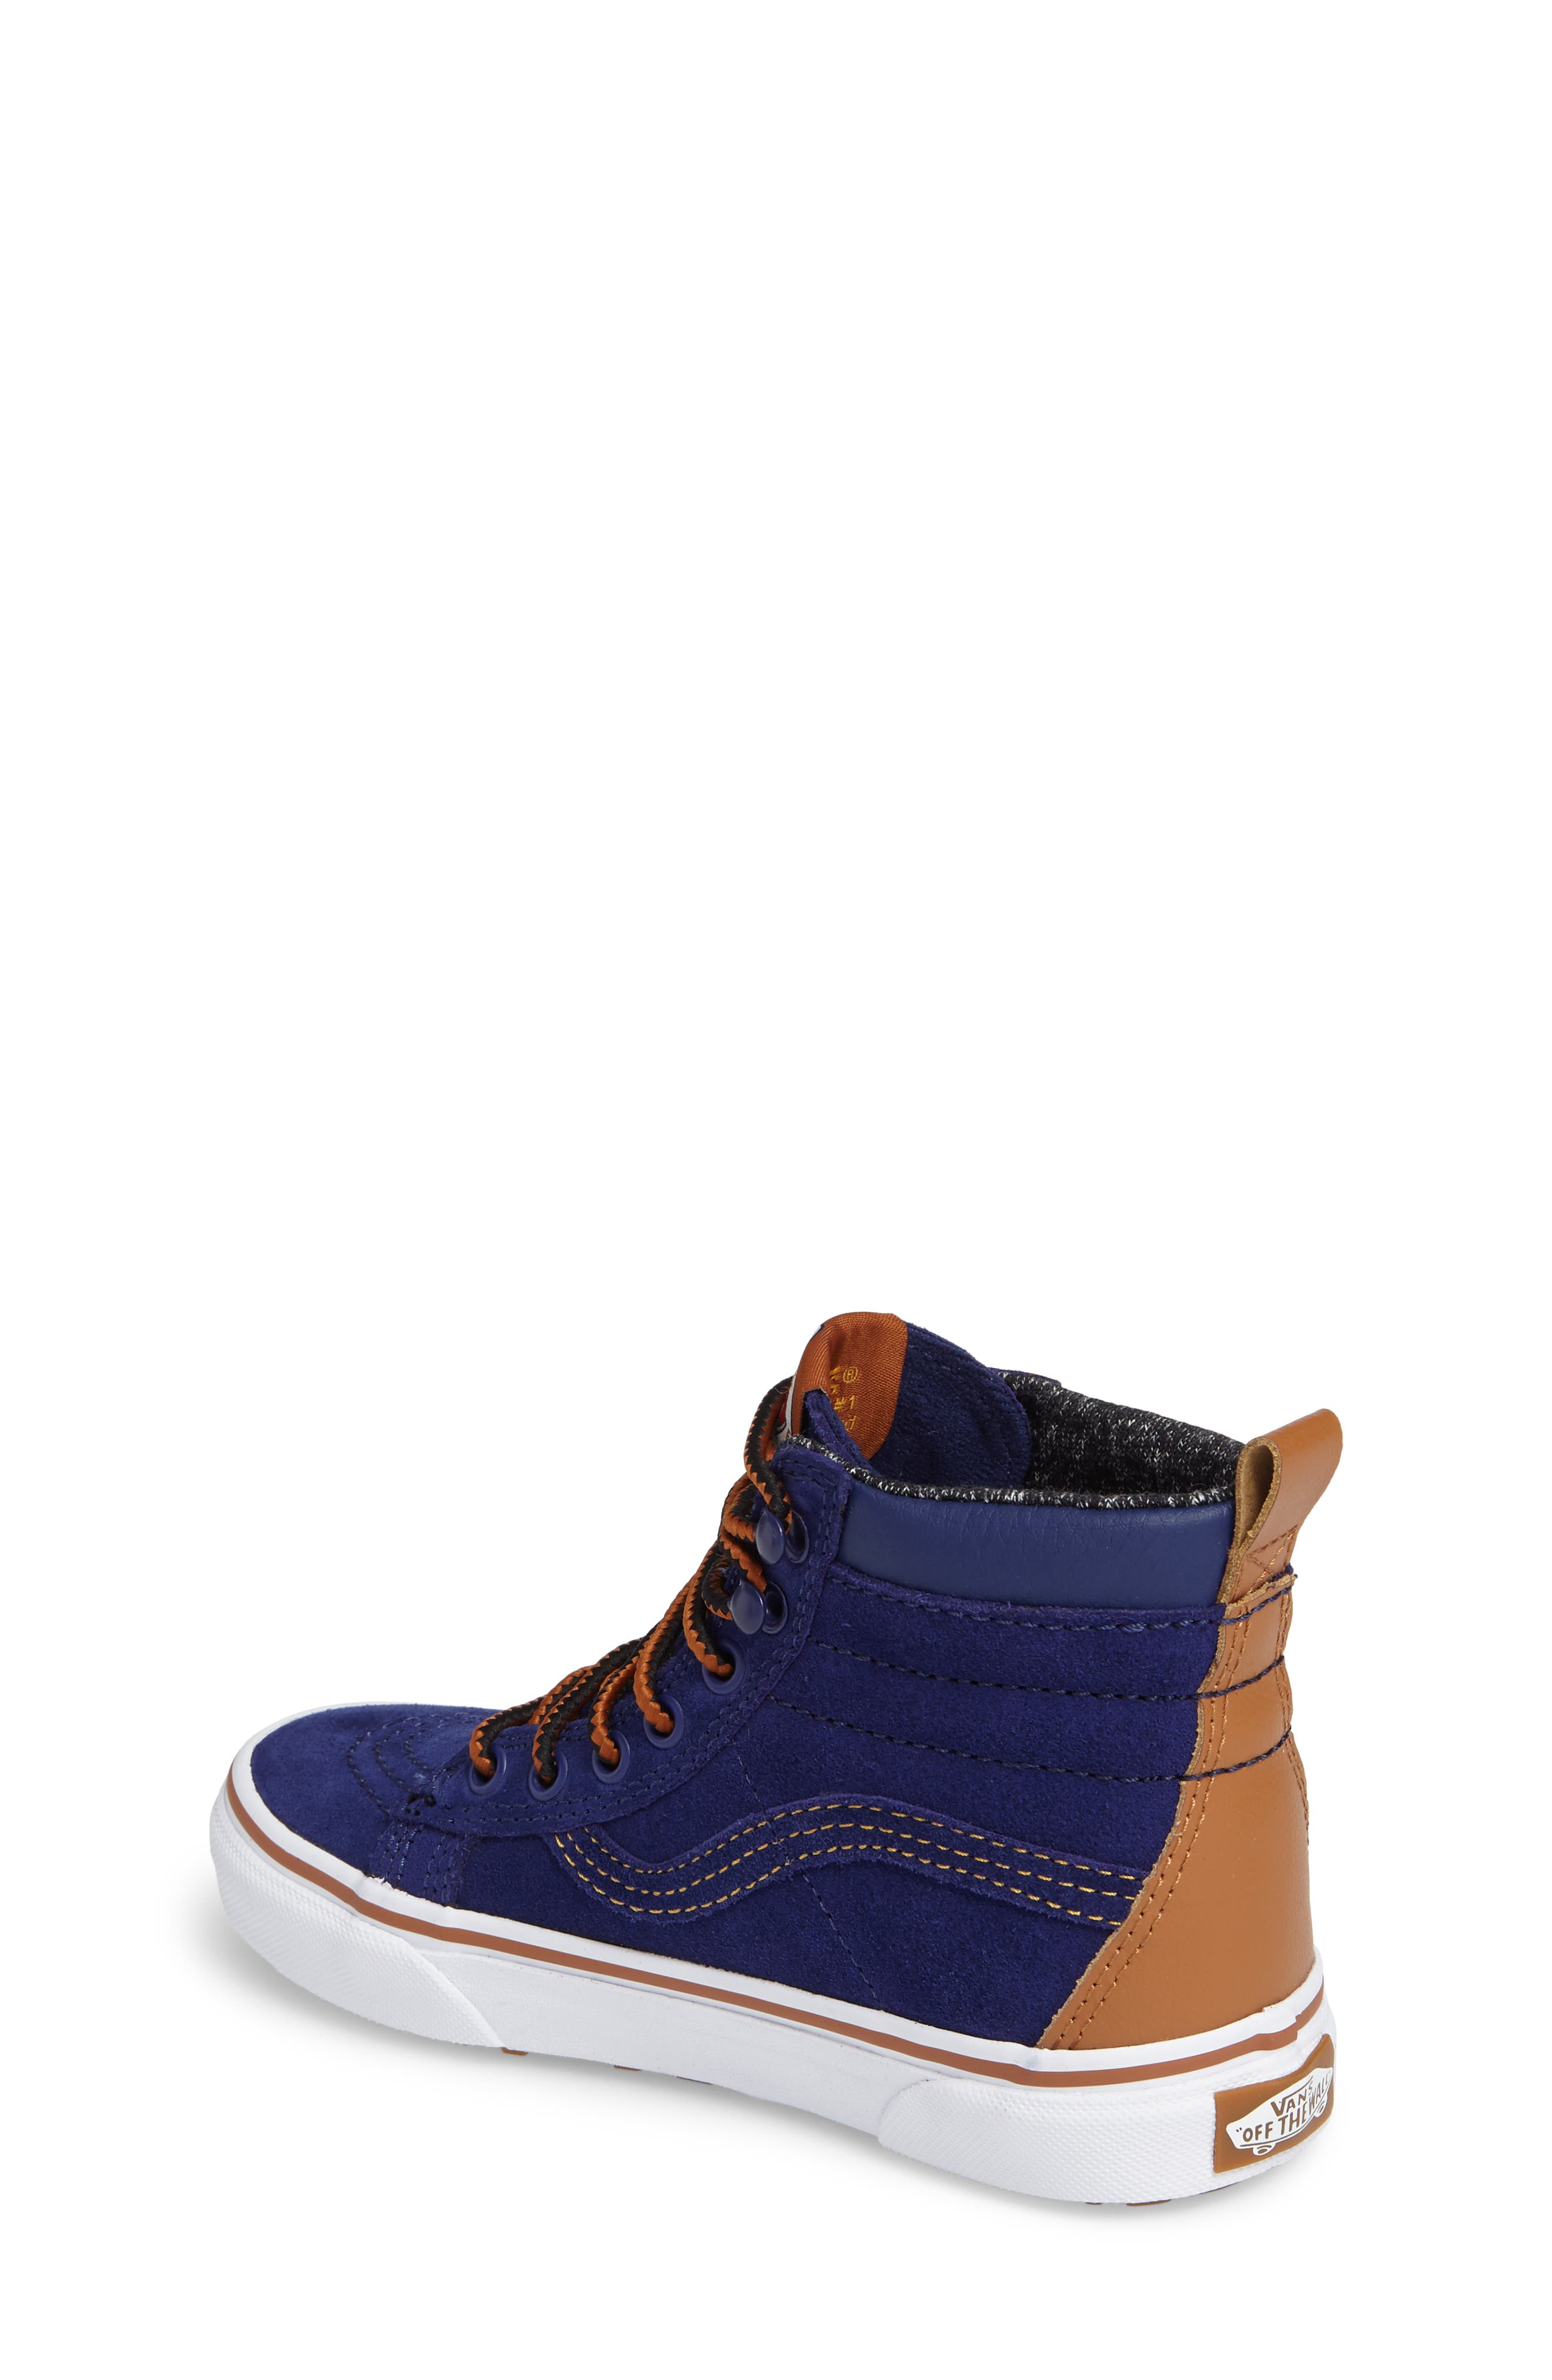 SK8-Hi Sneaker,                             Alternate thumbnail 19, color,